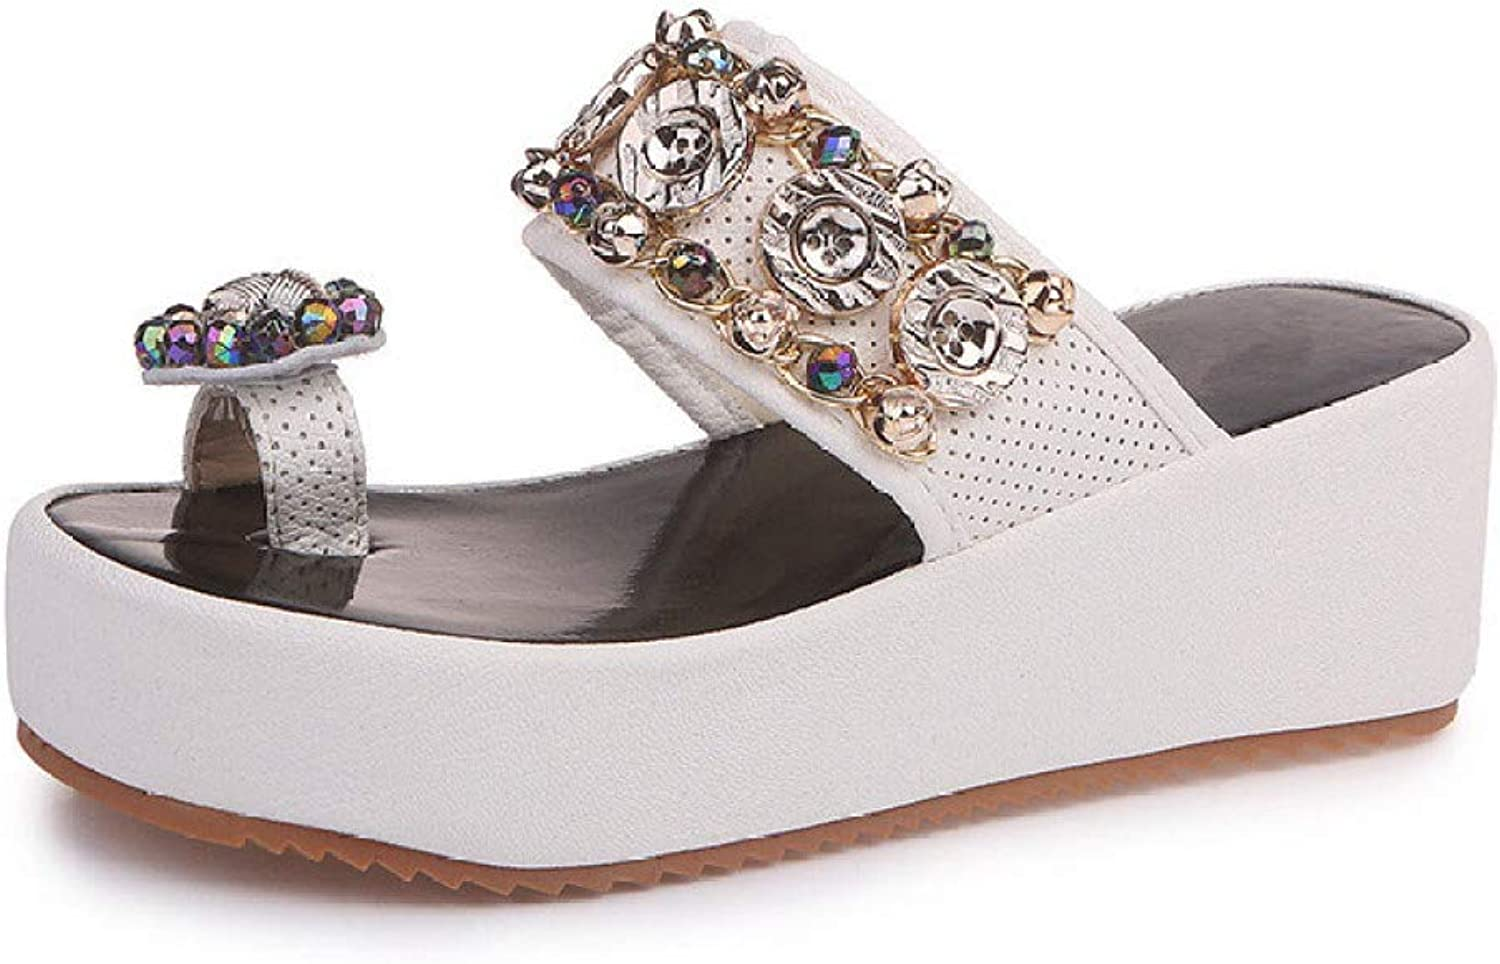 T-JULY Woman Flip Flops Wedges Fashion Crystal String Bead Platform Female Slides Ladies shoes Women Sandals Summer shoes